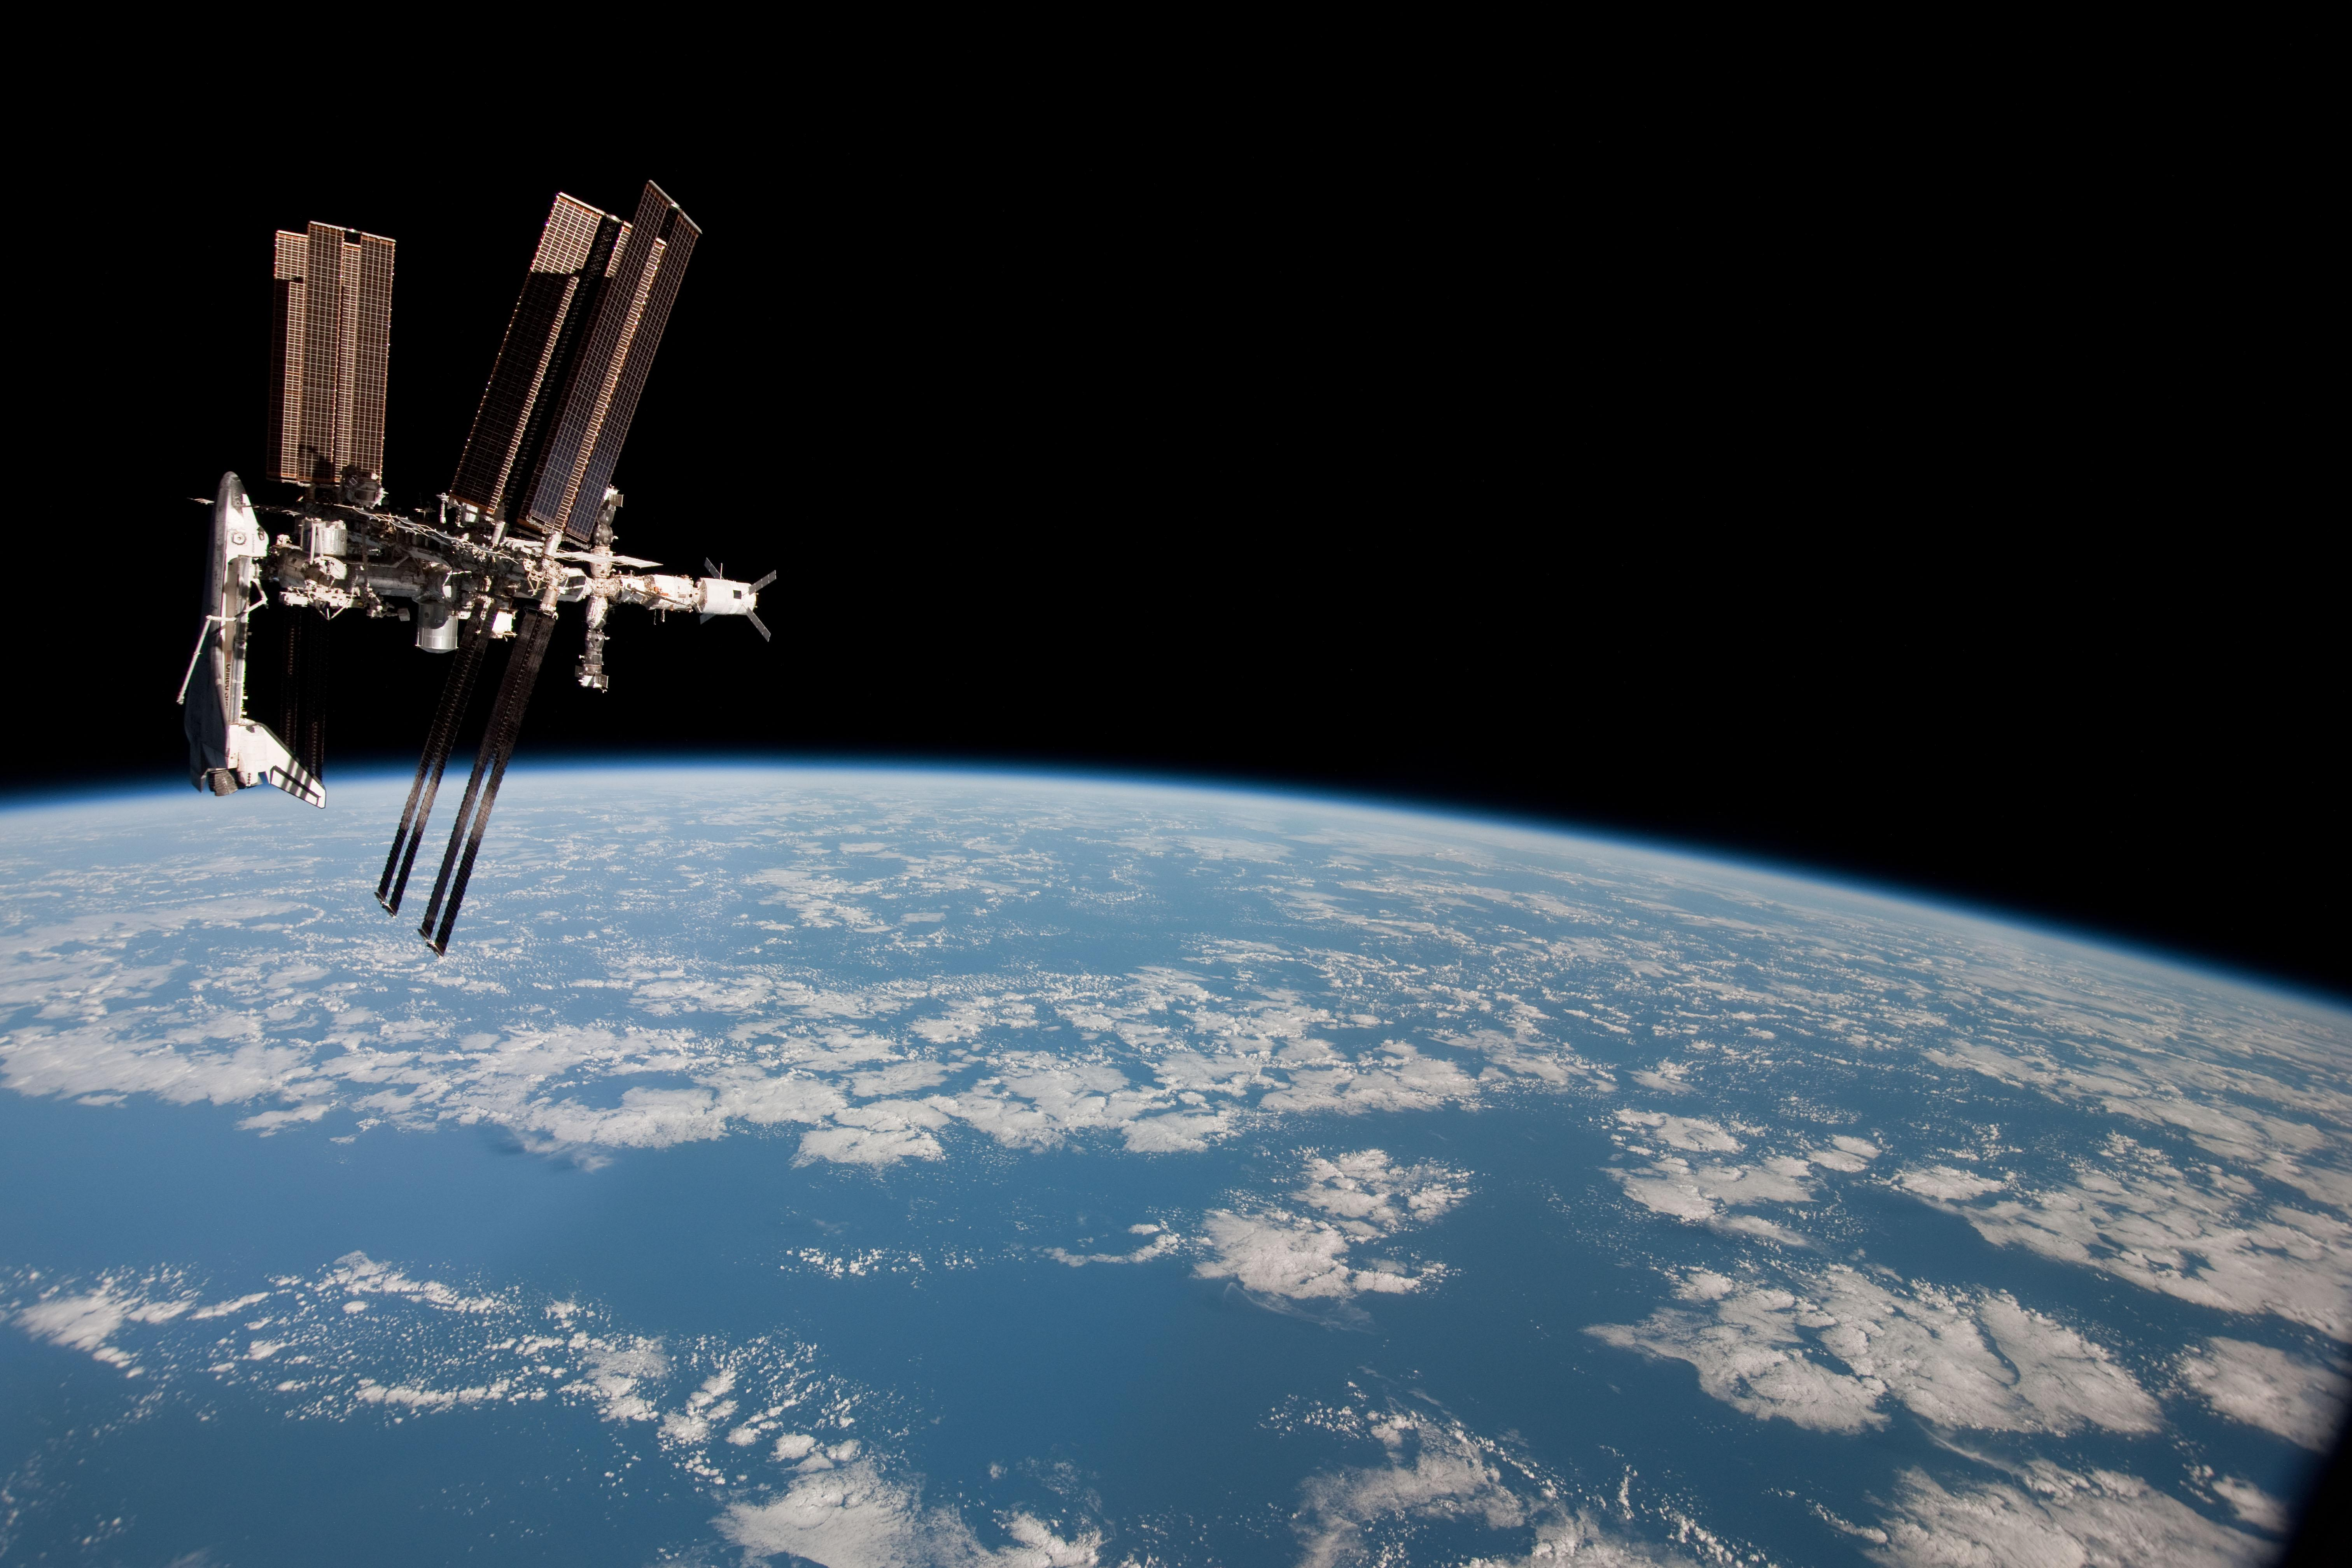 photos of the space station seen from the ground as - photo #26